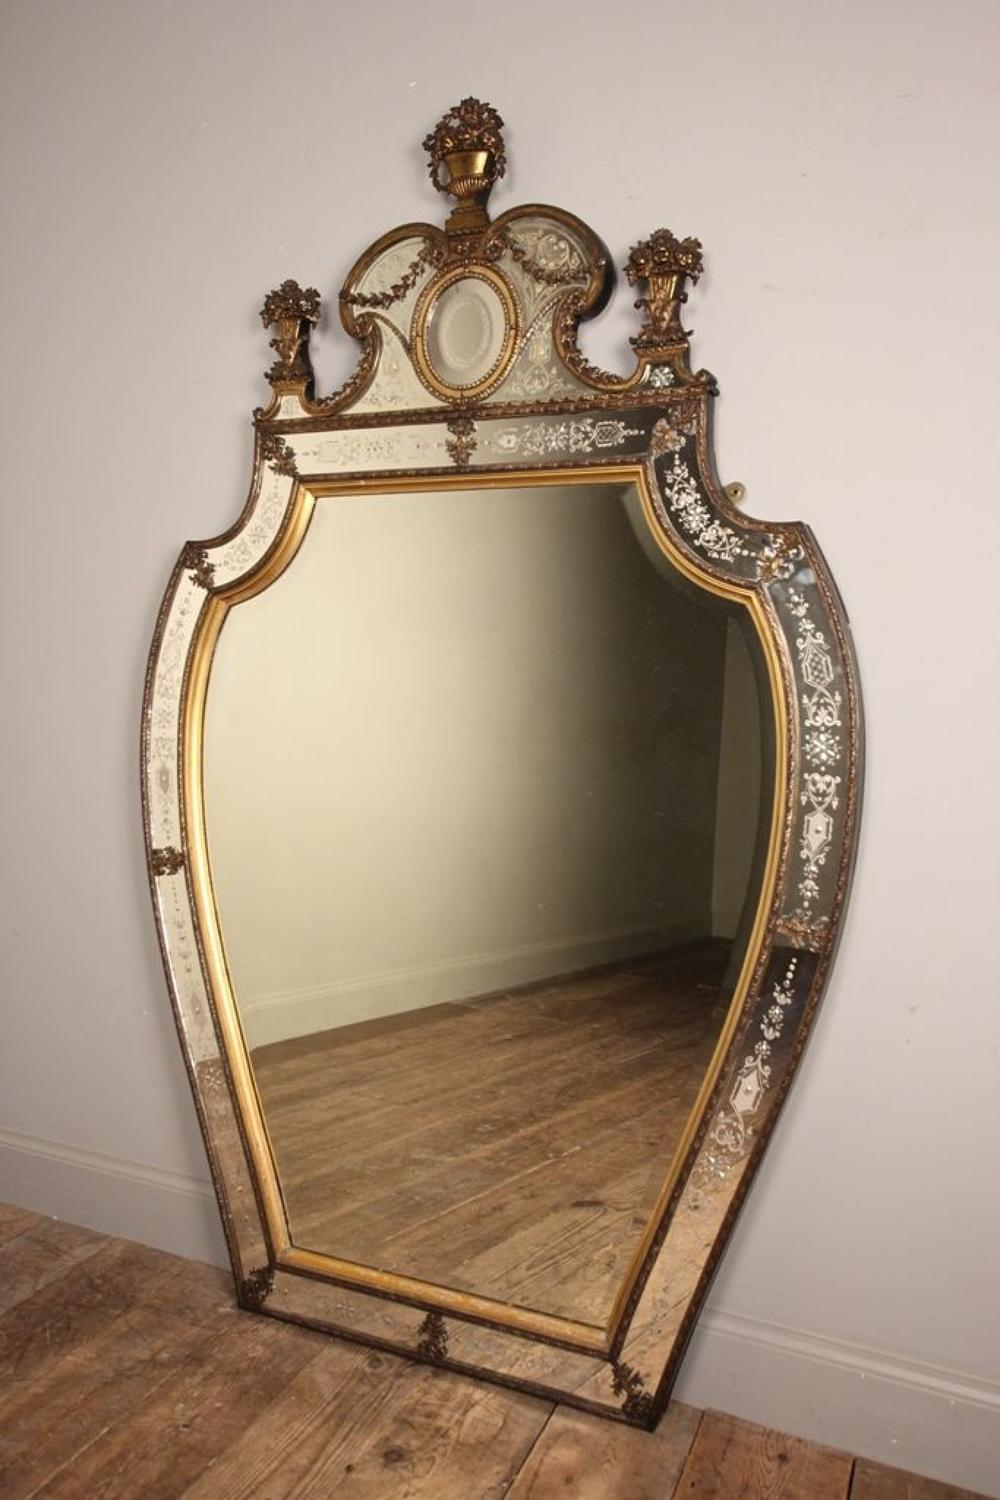 Outstanding Large 19th C Venetian Ormolu Mirror